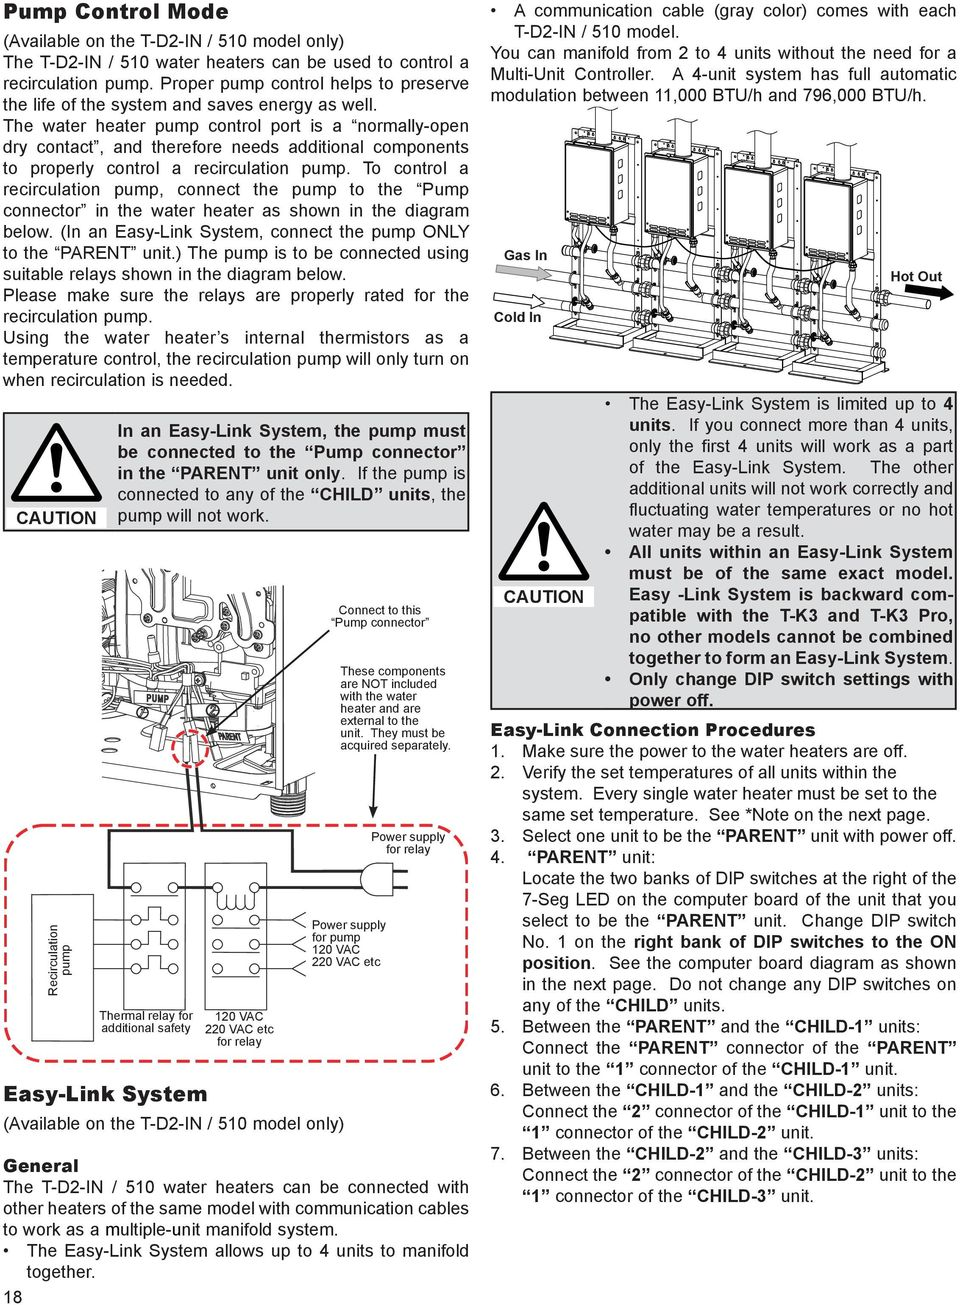 Vwh Diagram Ao Smith Trusted Schematics Aosmithmotorschematic By On Demand Water Heater Installation Manual And Owner S Guide Pdf Motor Cross Reference